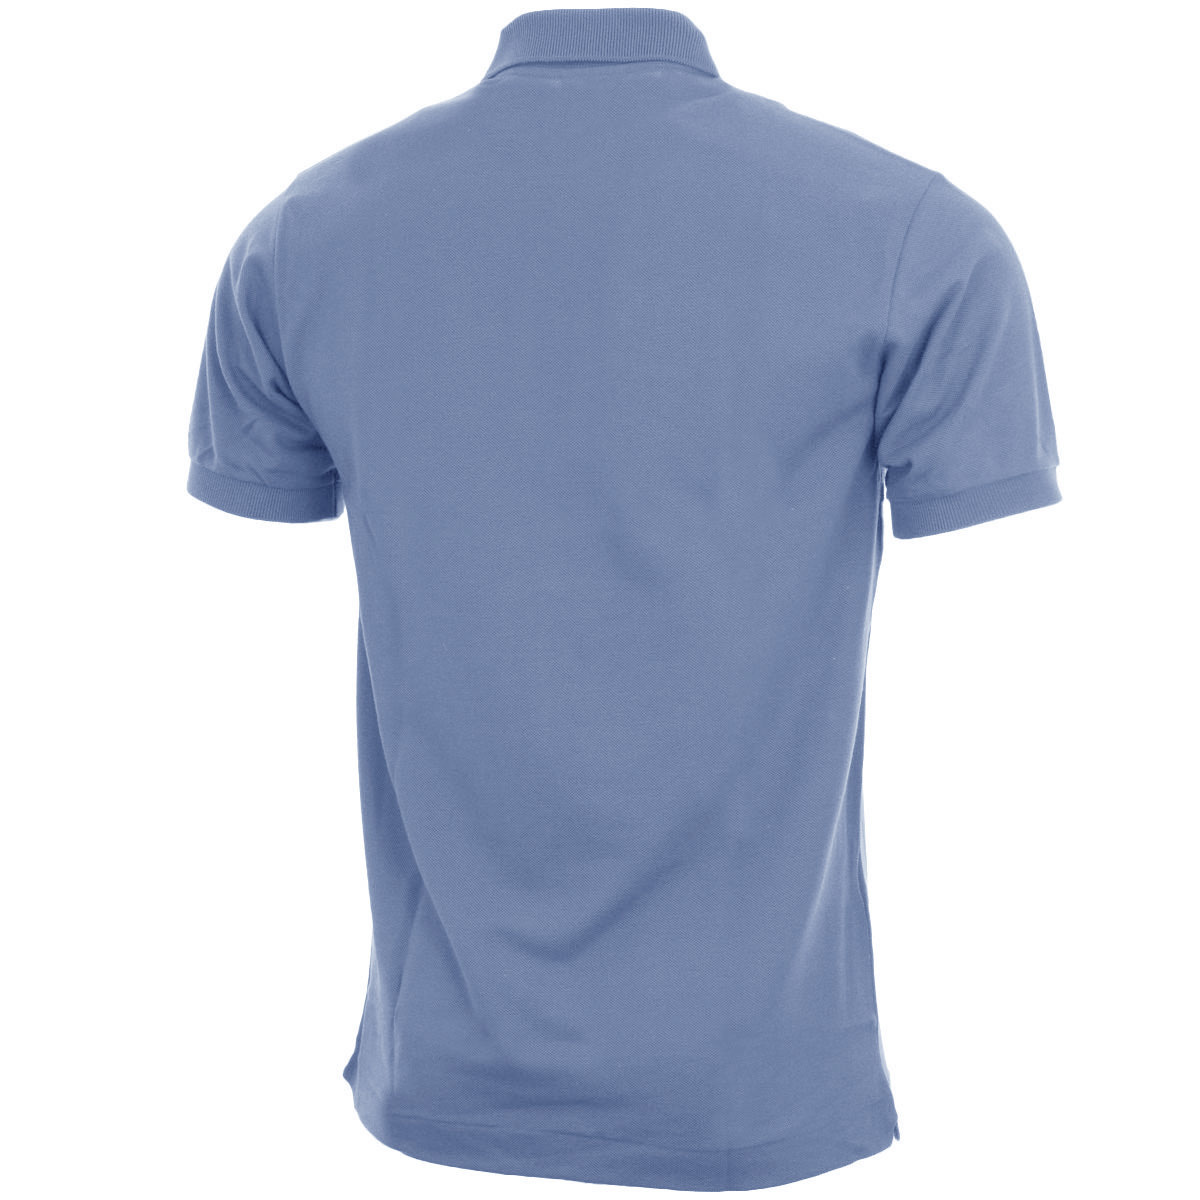 Lacoste-Mens-Classic-Cotton-L1212-Short-Sleeve-Polo-Shirt-31-OFF-RRP thumbnail 42